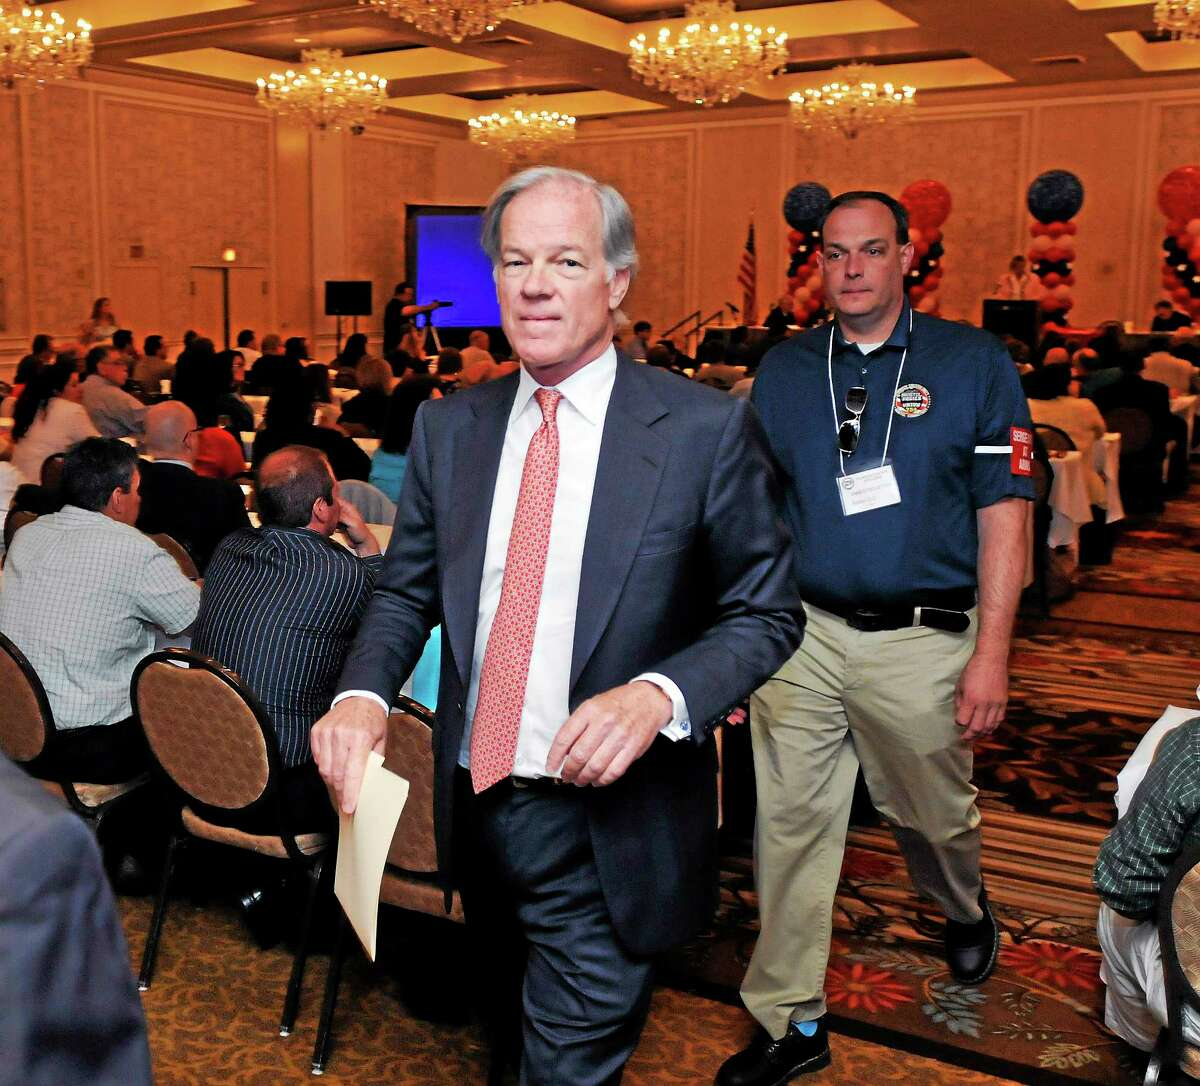 GOP gubernatorial candidate Tom Foley leaves the AFL-CIO political convention at the Omni New Haven Hotel at New Haven after addressing the union June 16.